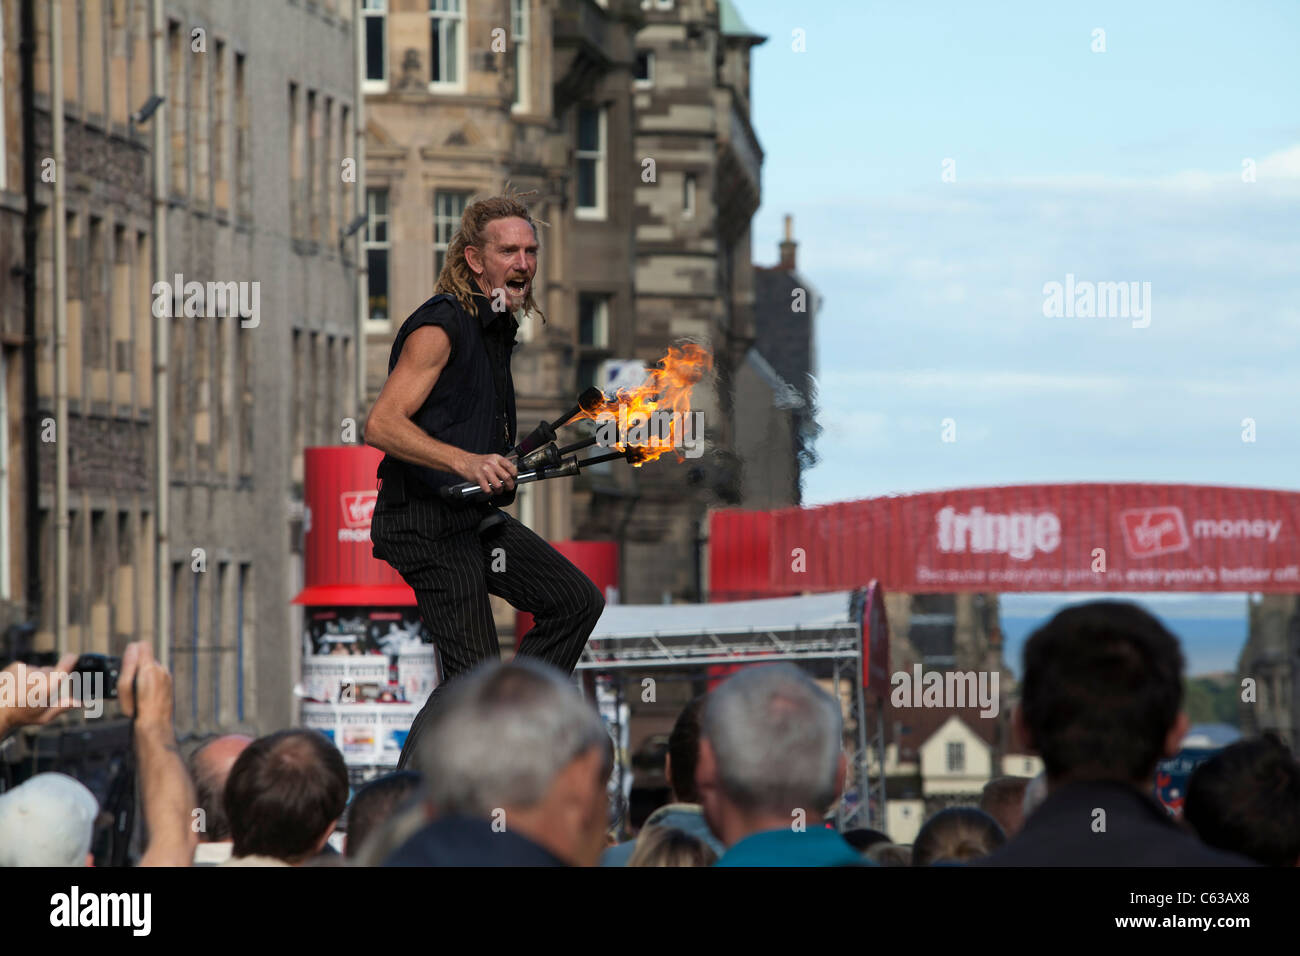 A juggler performs for the crowds on Edinburgh's Royal Mile, during the 2011 Edinburgh Festival. - Stock Image